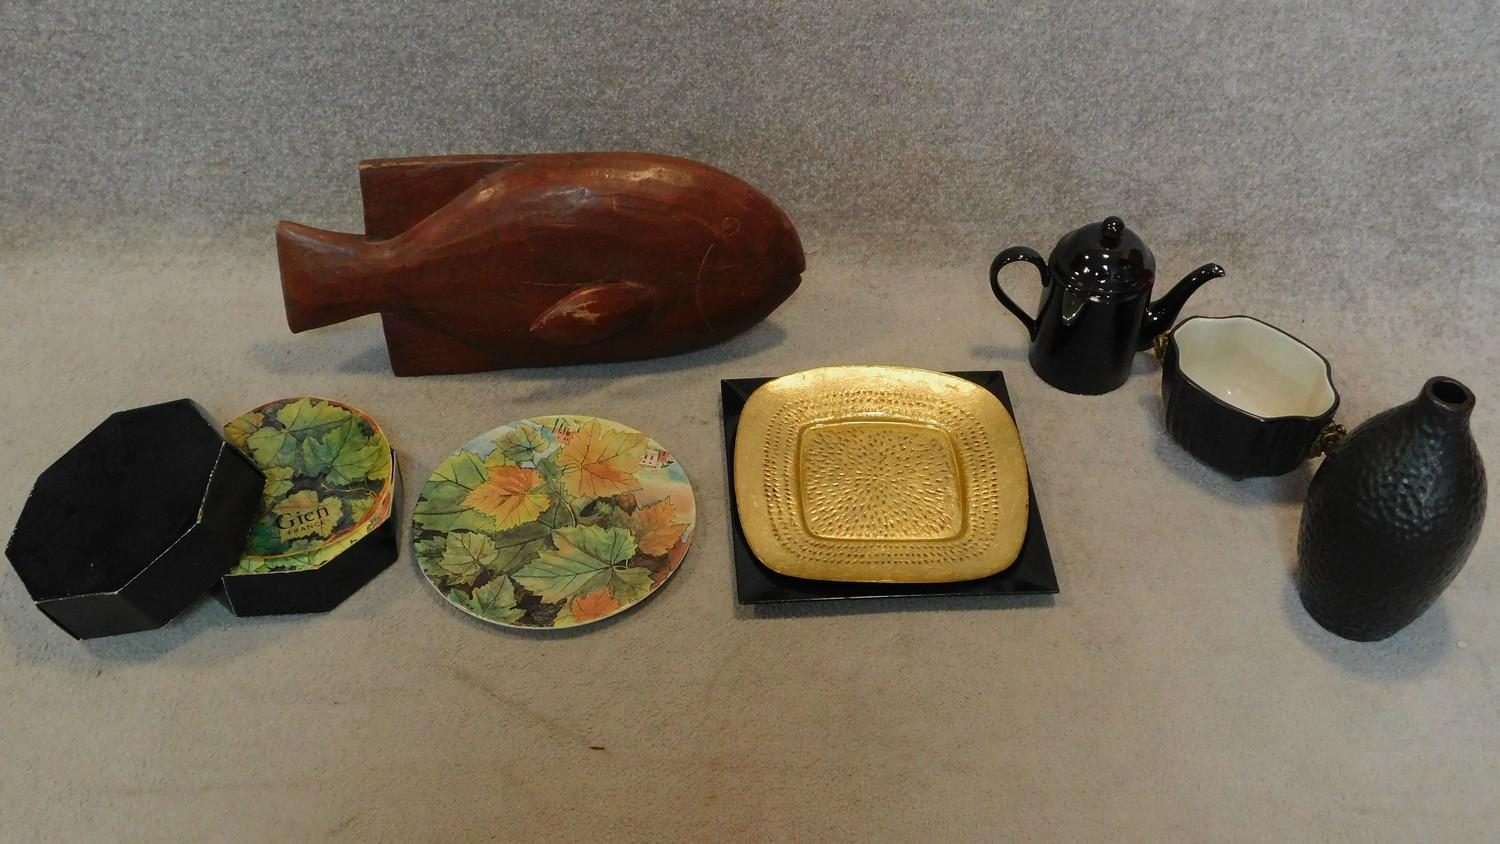 A boxed set of foliate design plates, a tureen with ram's head handles, a carved fish and other